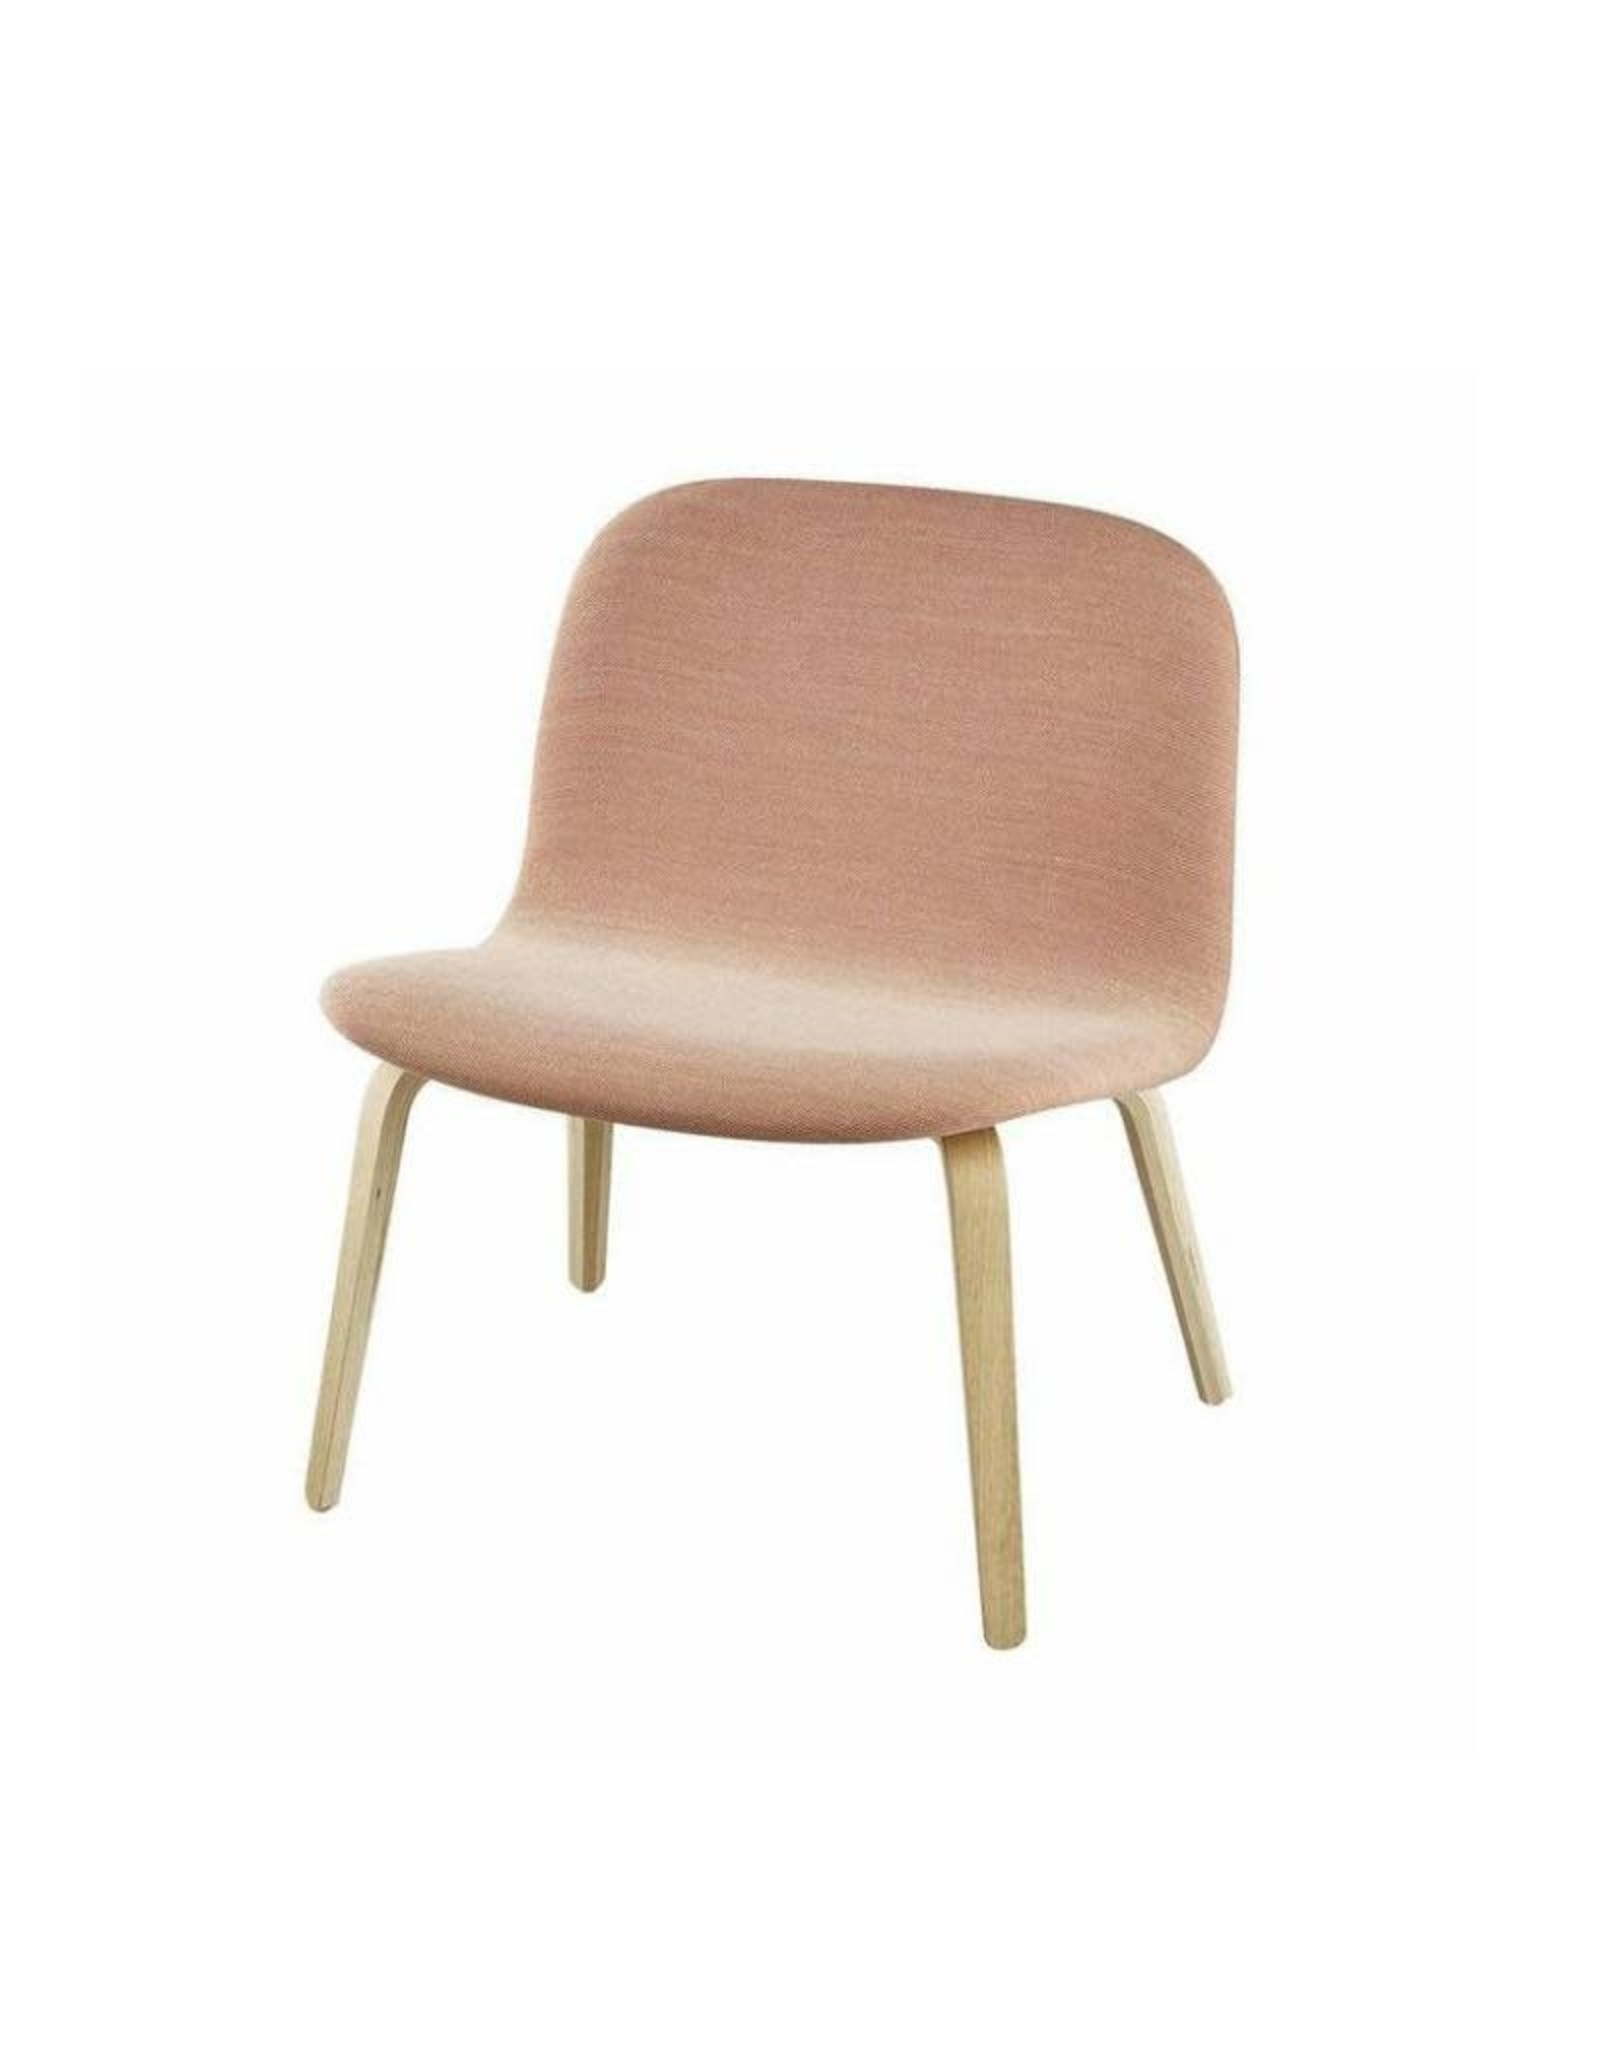 VISU LOUNGE CHAIR SHELL UPHOLSTERED IN PINK